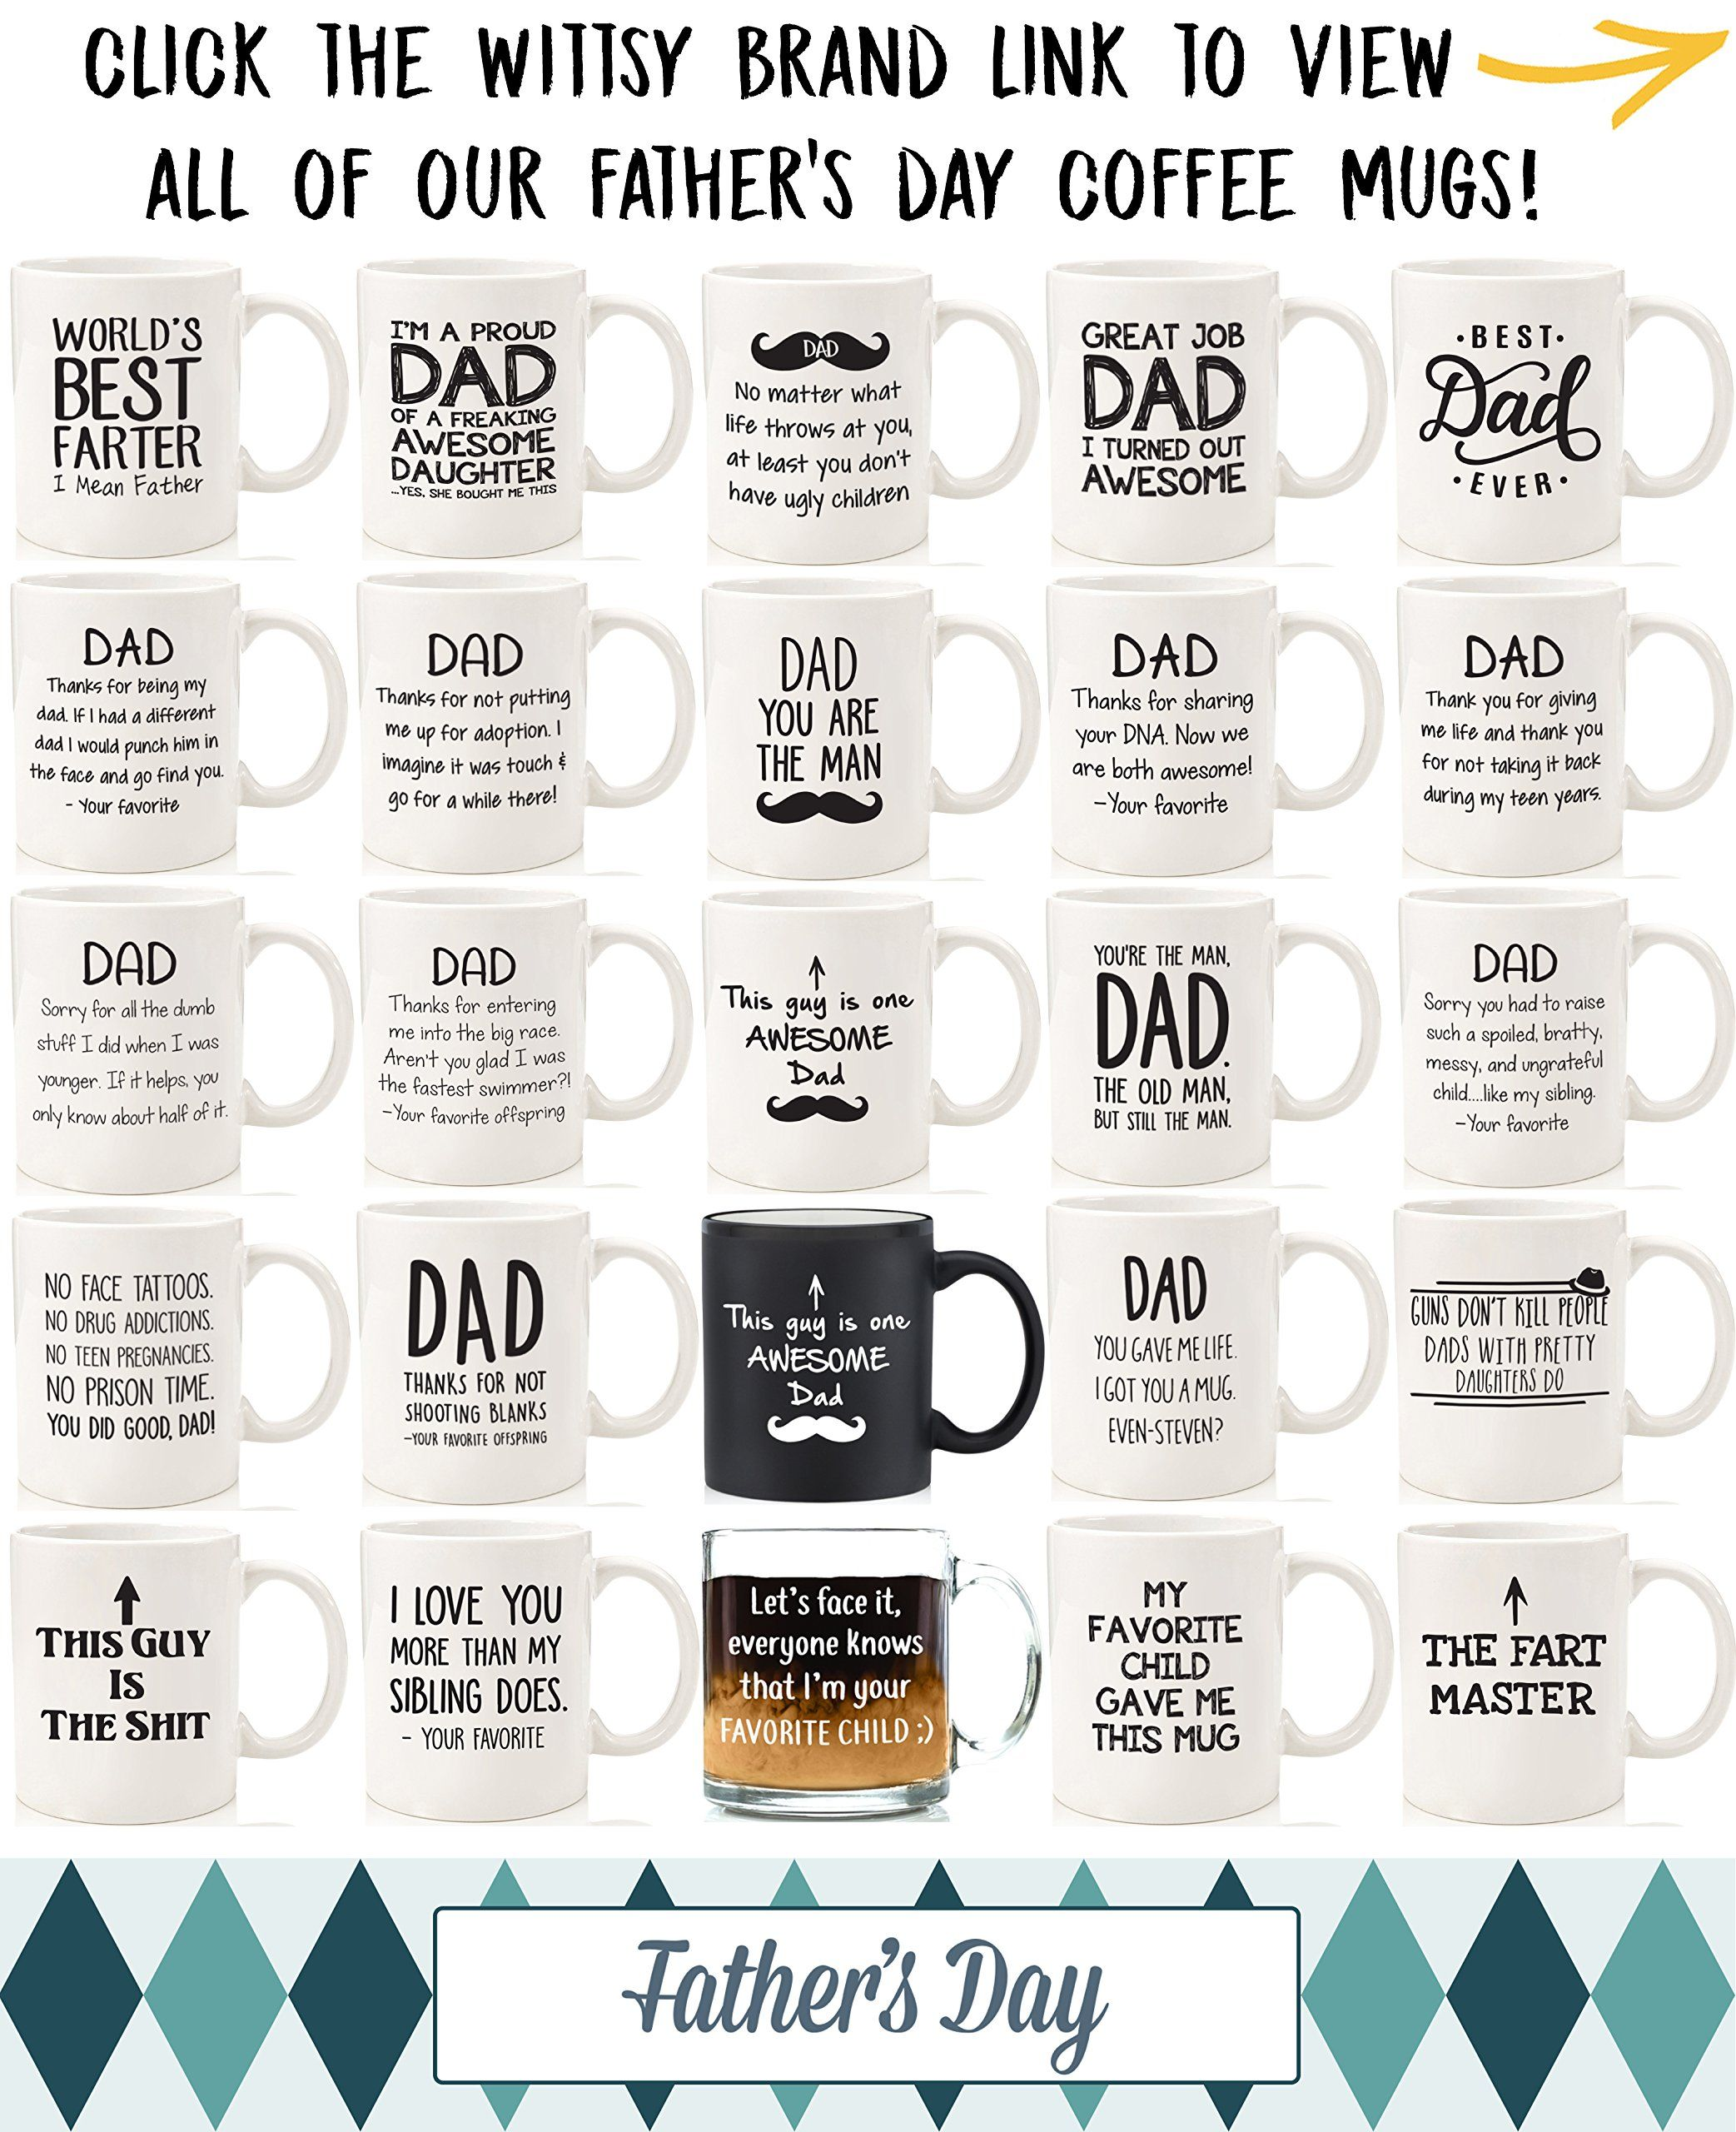 Best Mom /& Dad Christmas Gifts Son Him Novelty Bday Present for Parents Her Being Your Favorite Child Funny Mug Kids Women Fun Coffee Cup for Men Unique Gag Xmas Gift Idea from Daughter